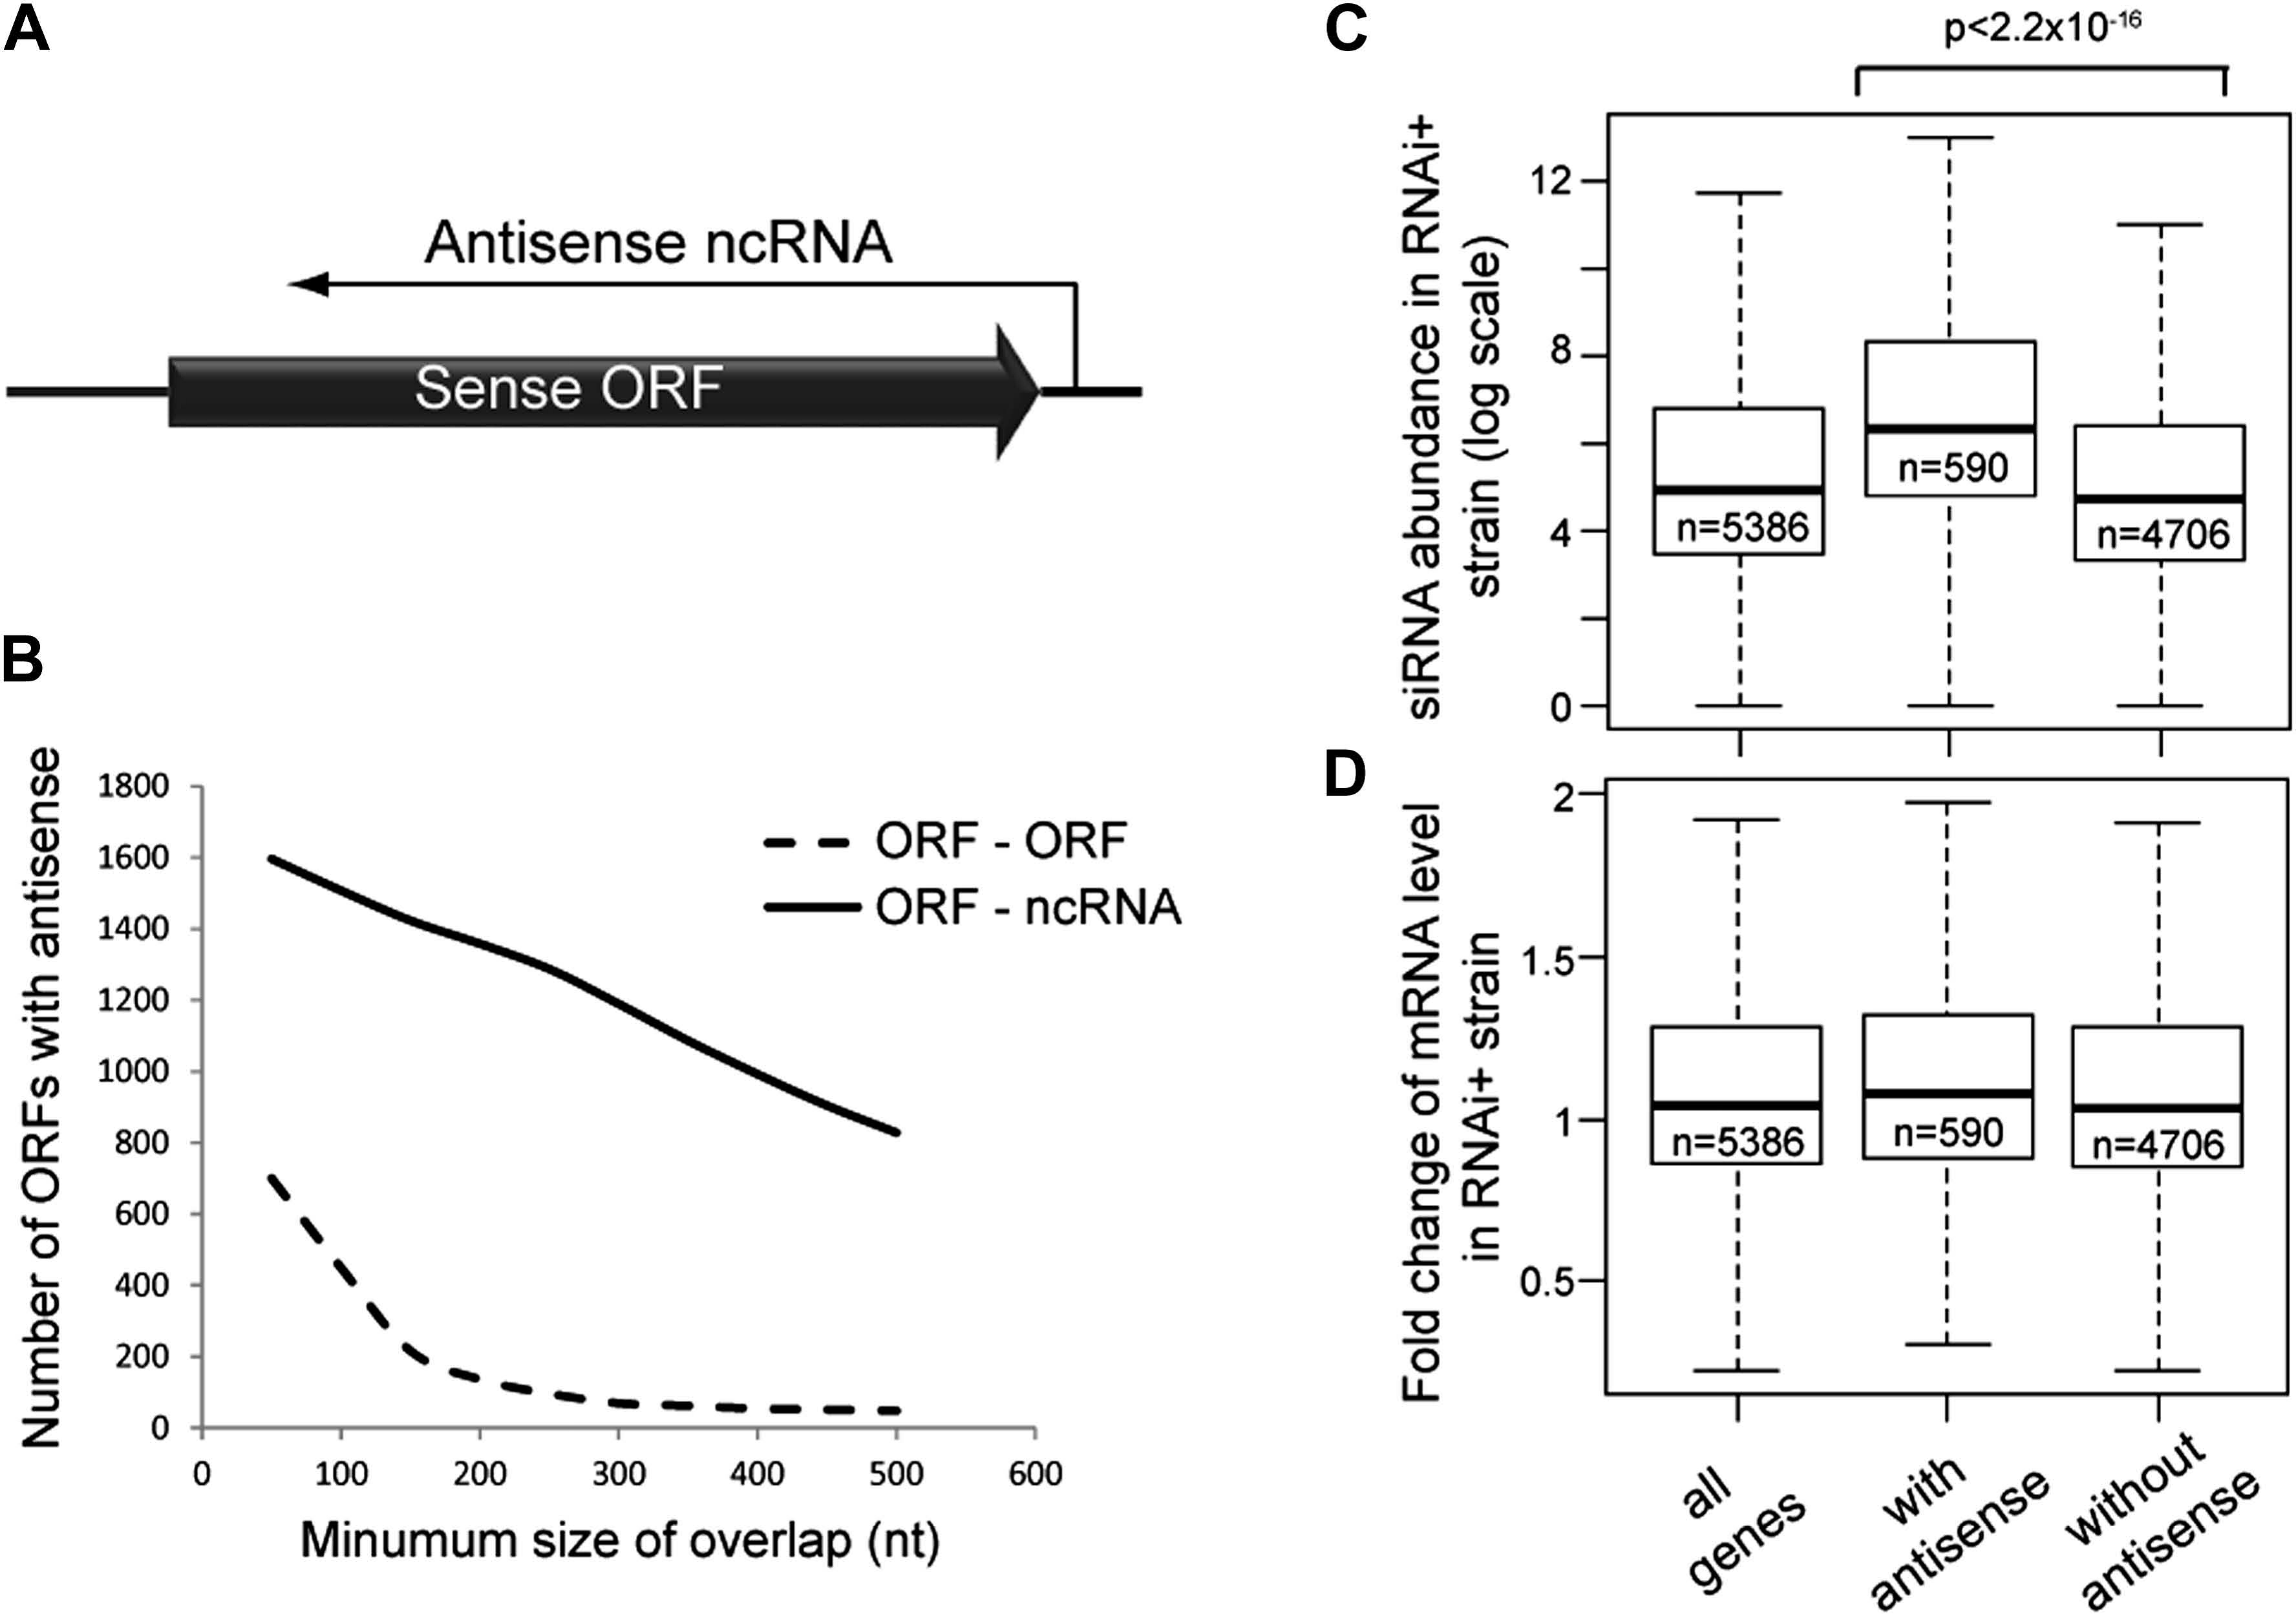 Frequency of annotated antisense non-protein coding RNAs